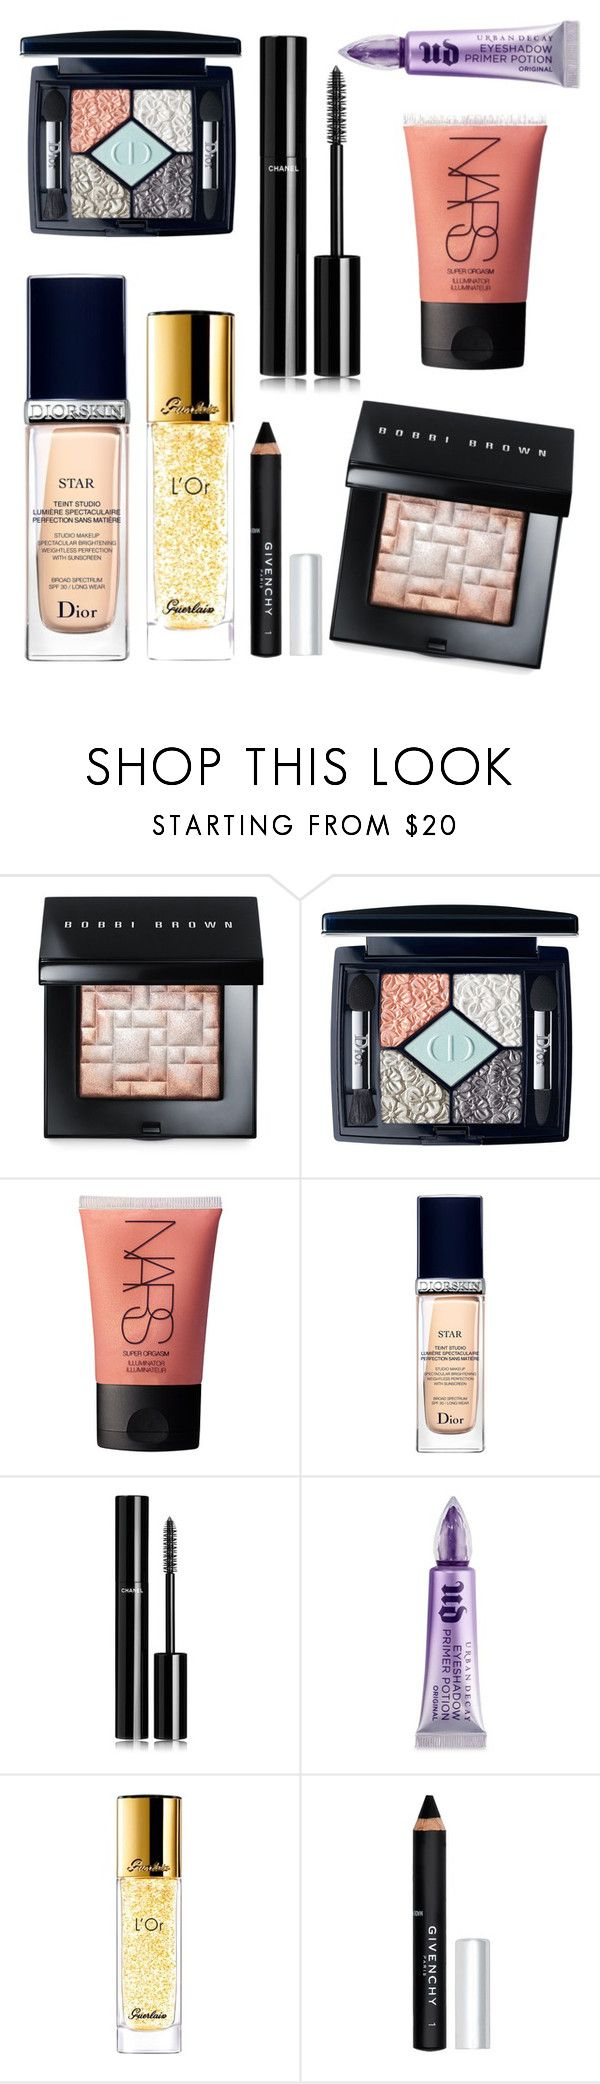 """""""High end makeup must-haves """" by kristinakai ❤ liked on Polyvore featuring beauty, Bobbi Brown Cosmetics, Christian Dior, NARS Cosmetics, Chanel, Urban Decay, Guerlain and Givenchy"""